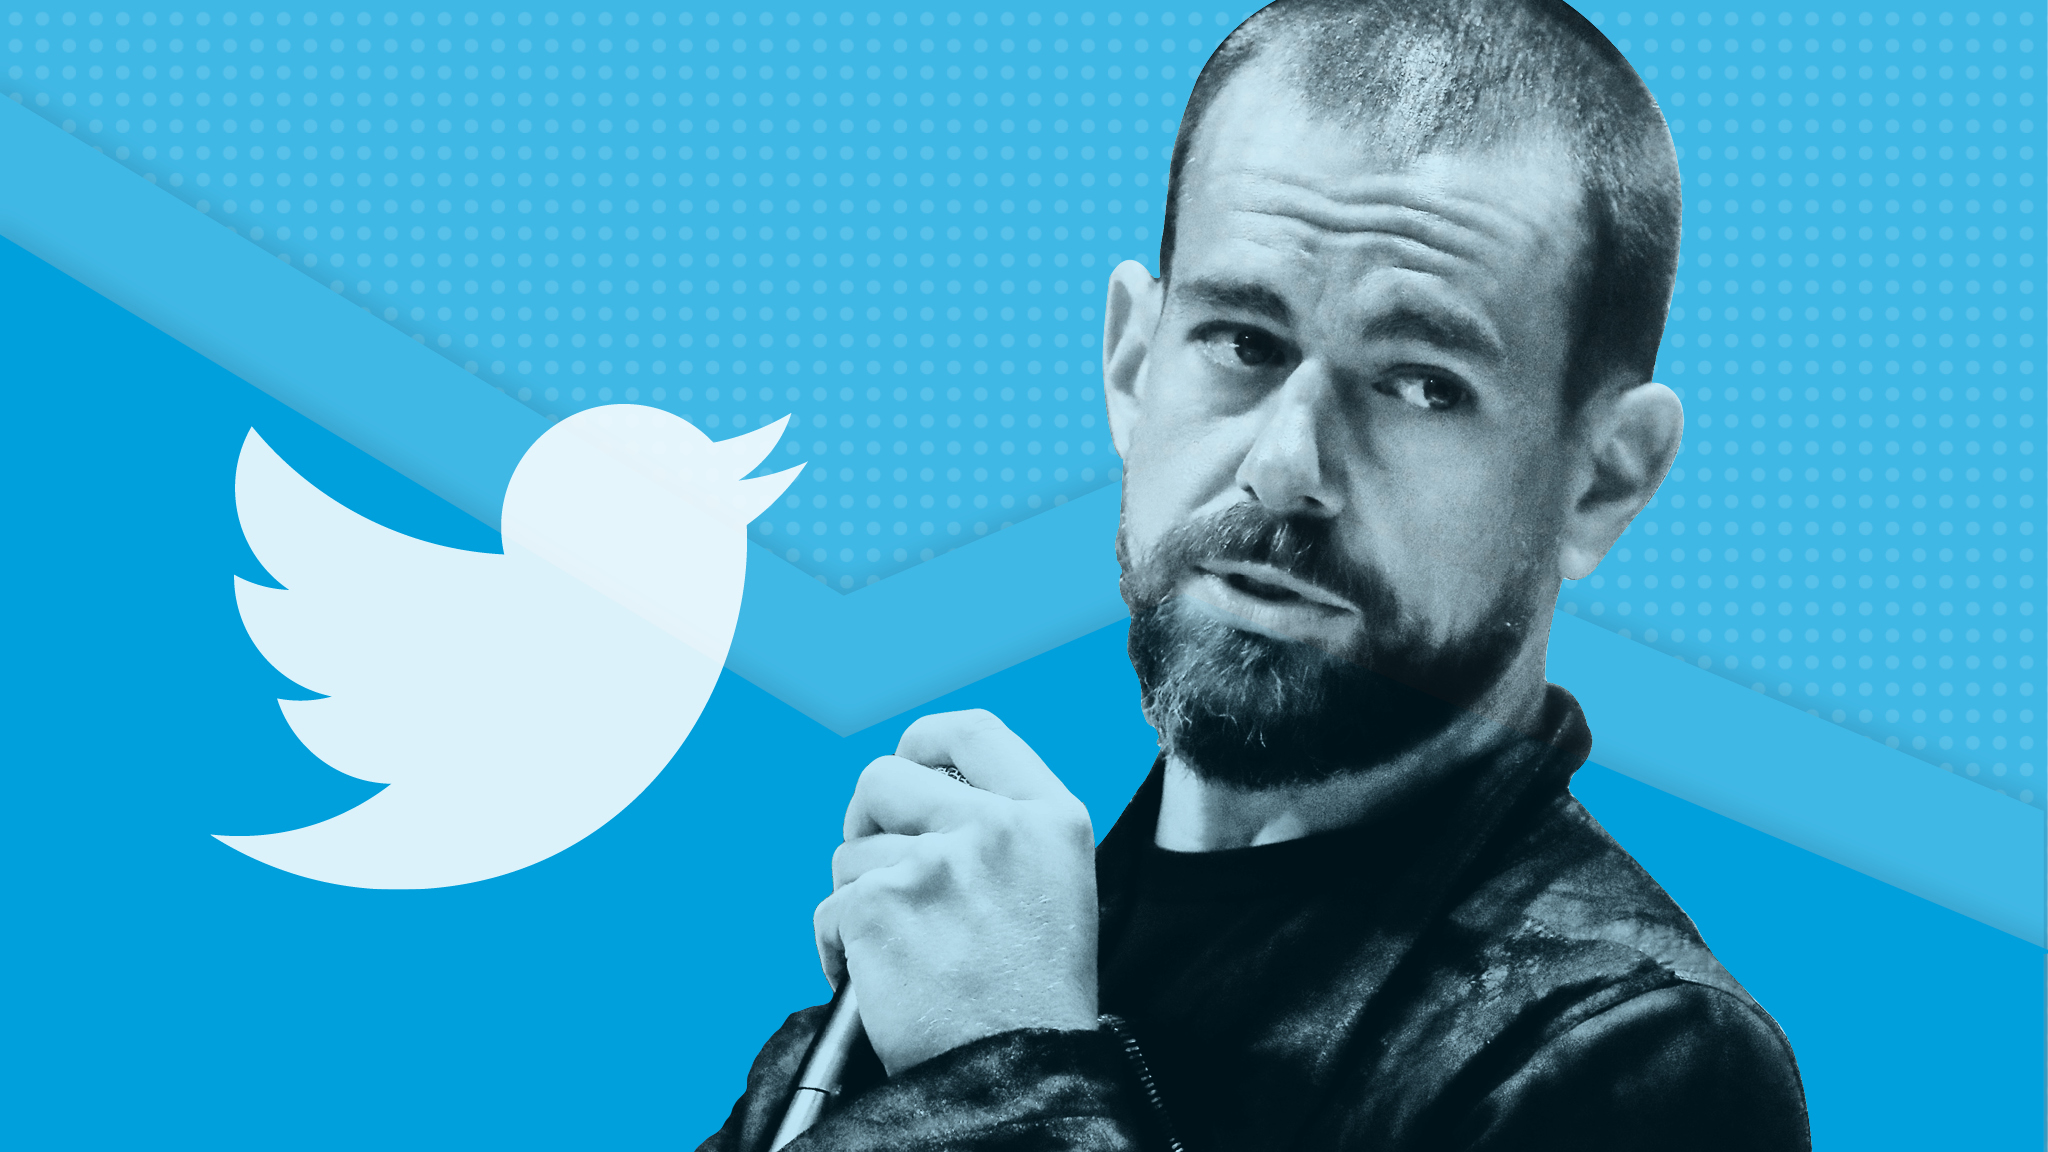 Jack Dorsey S Twitter Account Hacked Financial Times